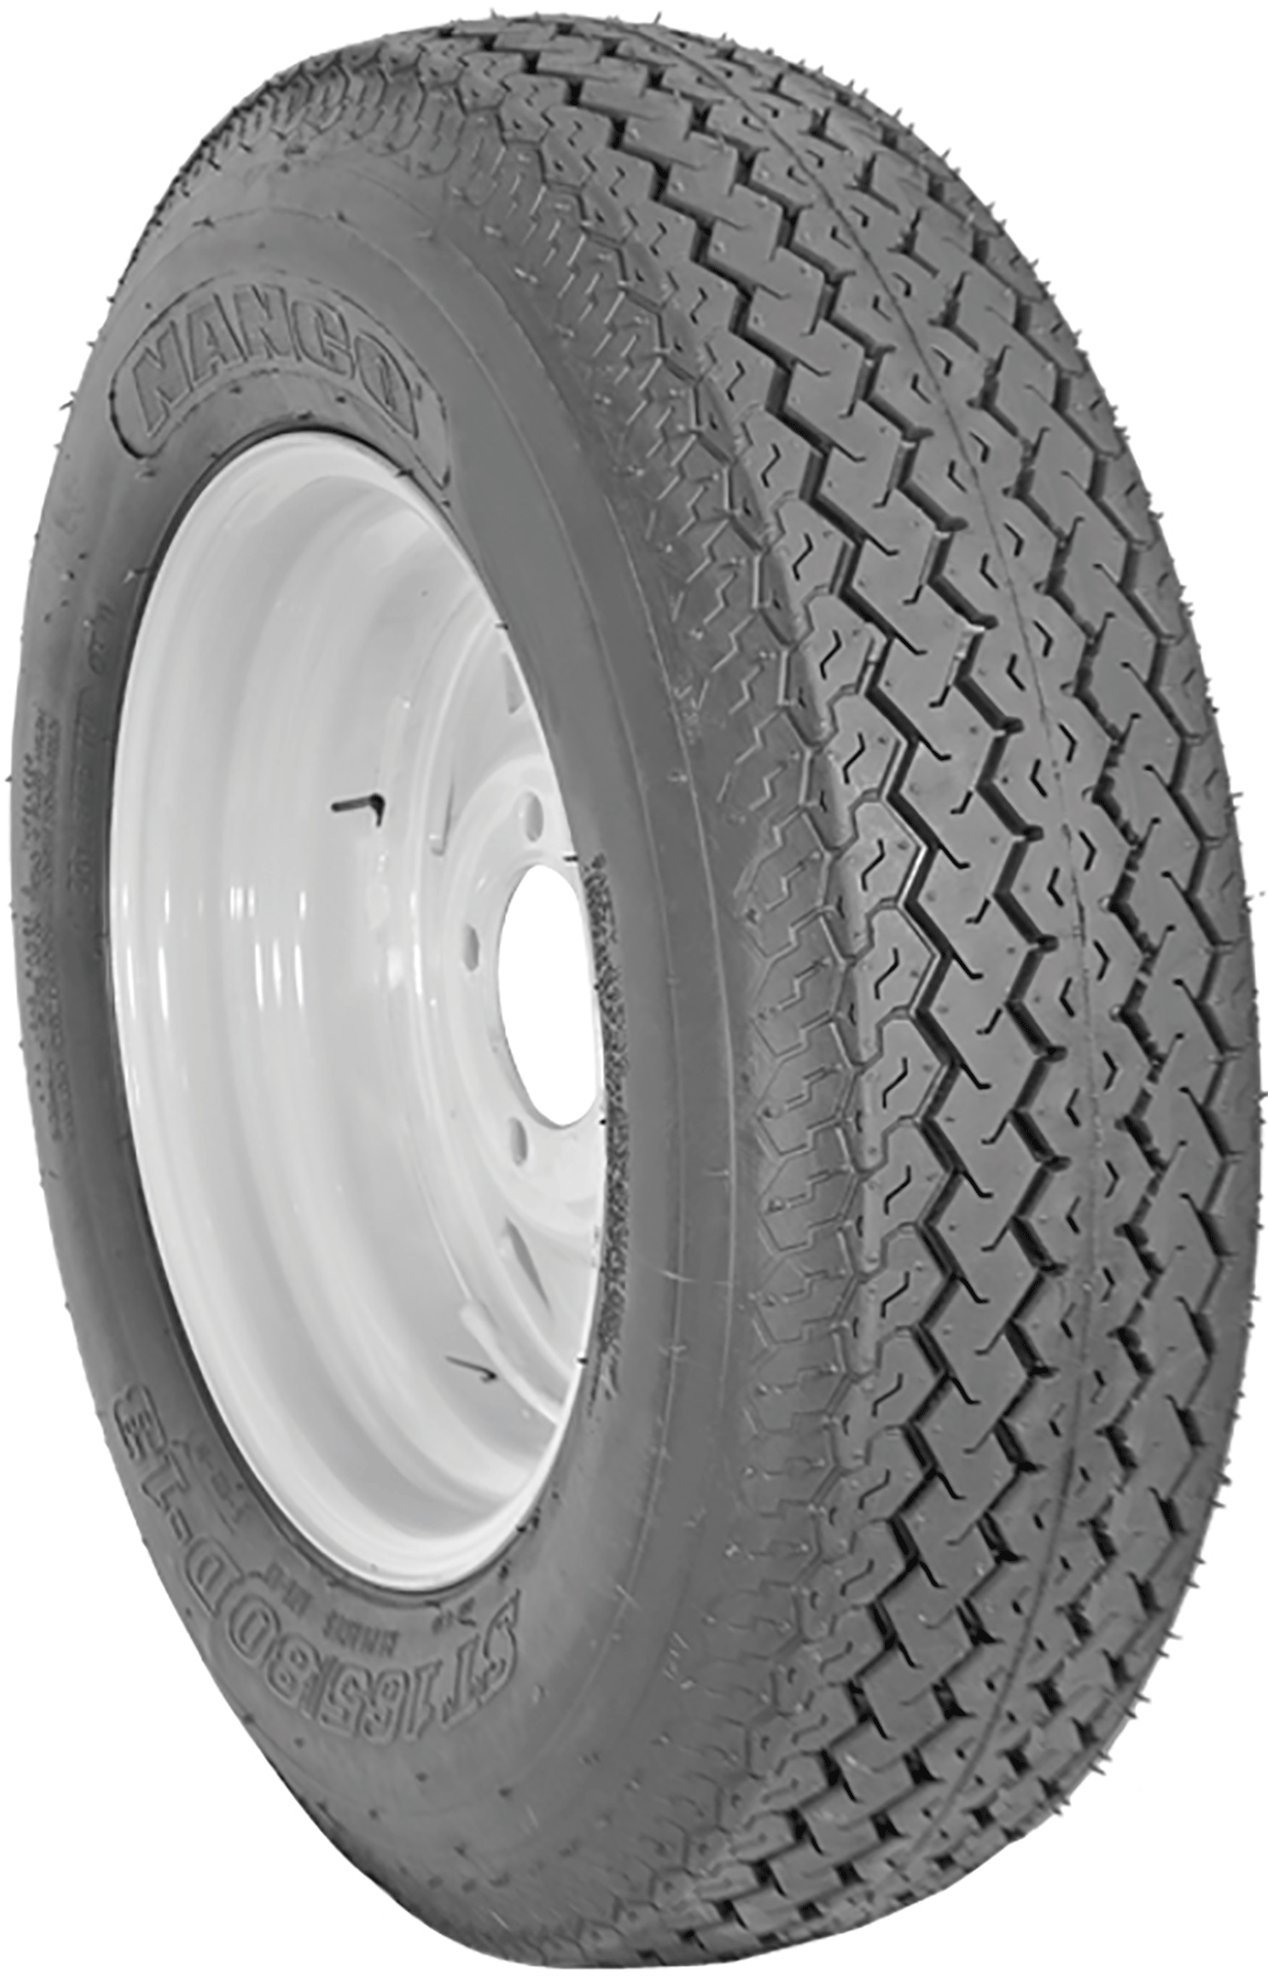 ST 175/80D13 Nanco S622 6 Ply C Load Bias Trailer Tire 1758013